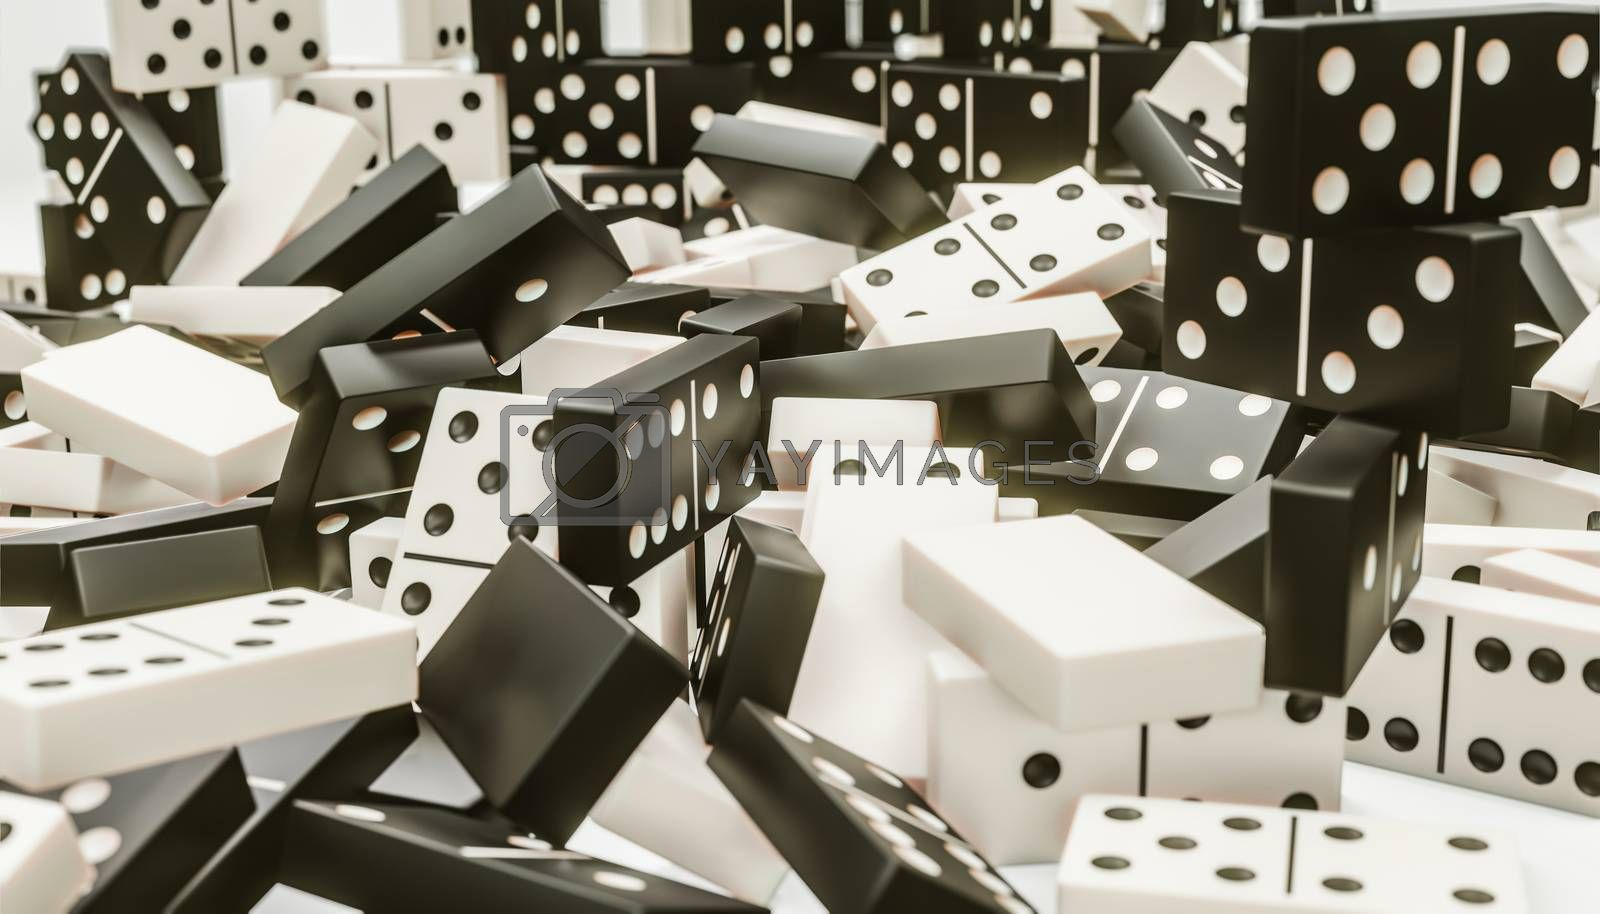 3d illustration of domino pieces on a table board